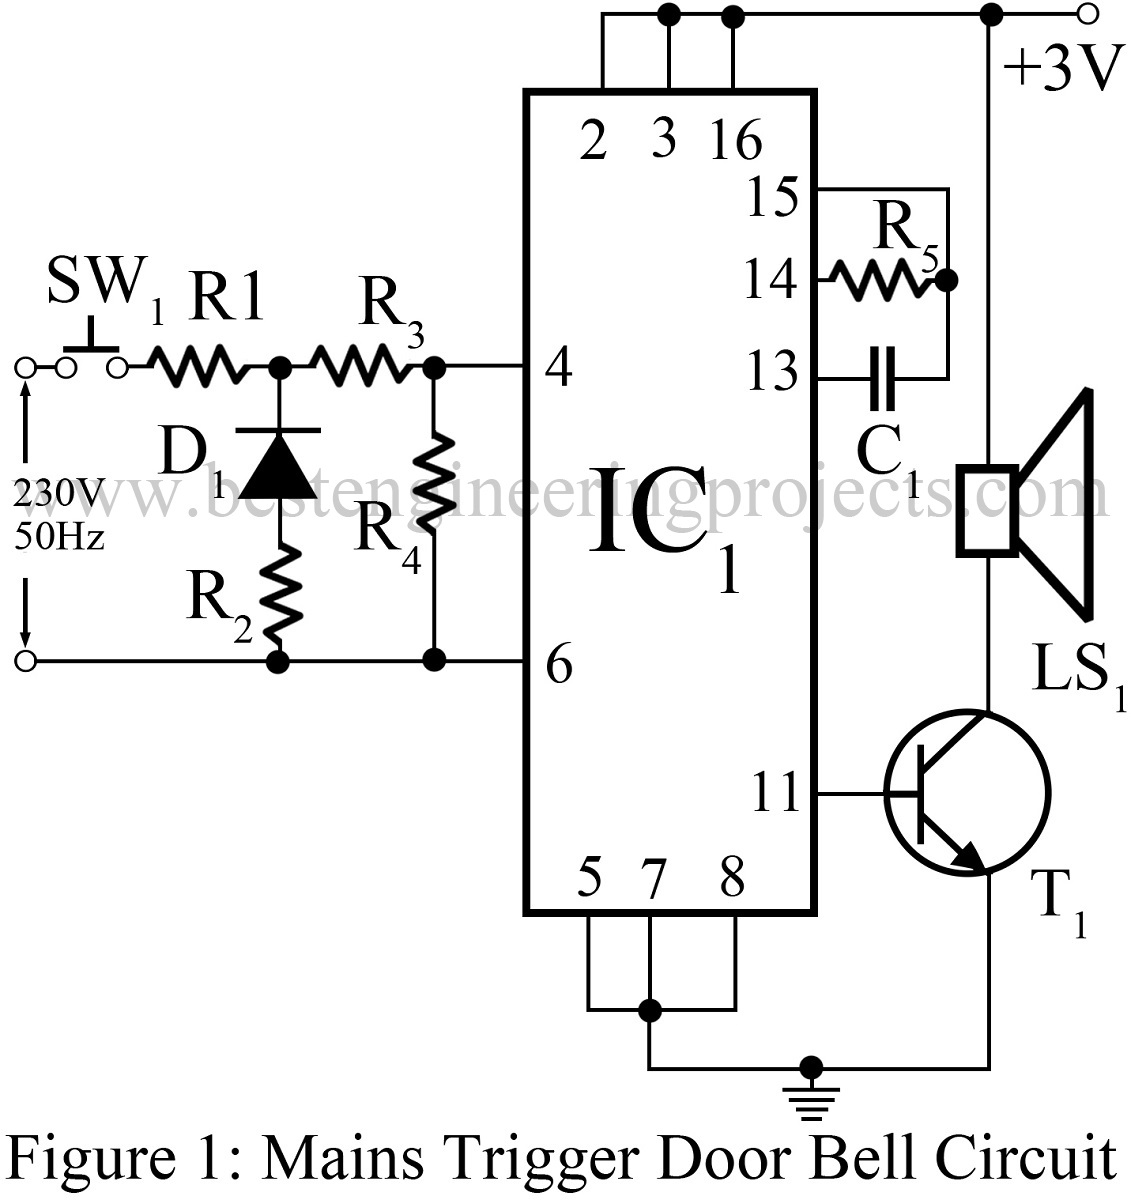 door bell circuit circuit diagram of door bell wiring door bell door bell wiring diagram door [ 965 x 1024 Pixel ]